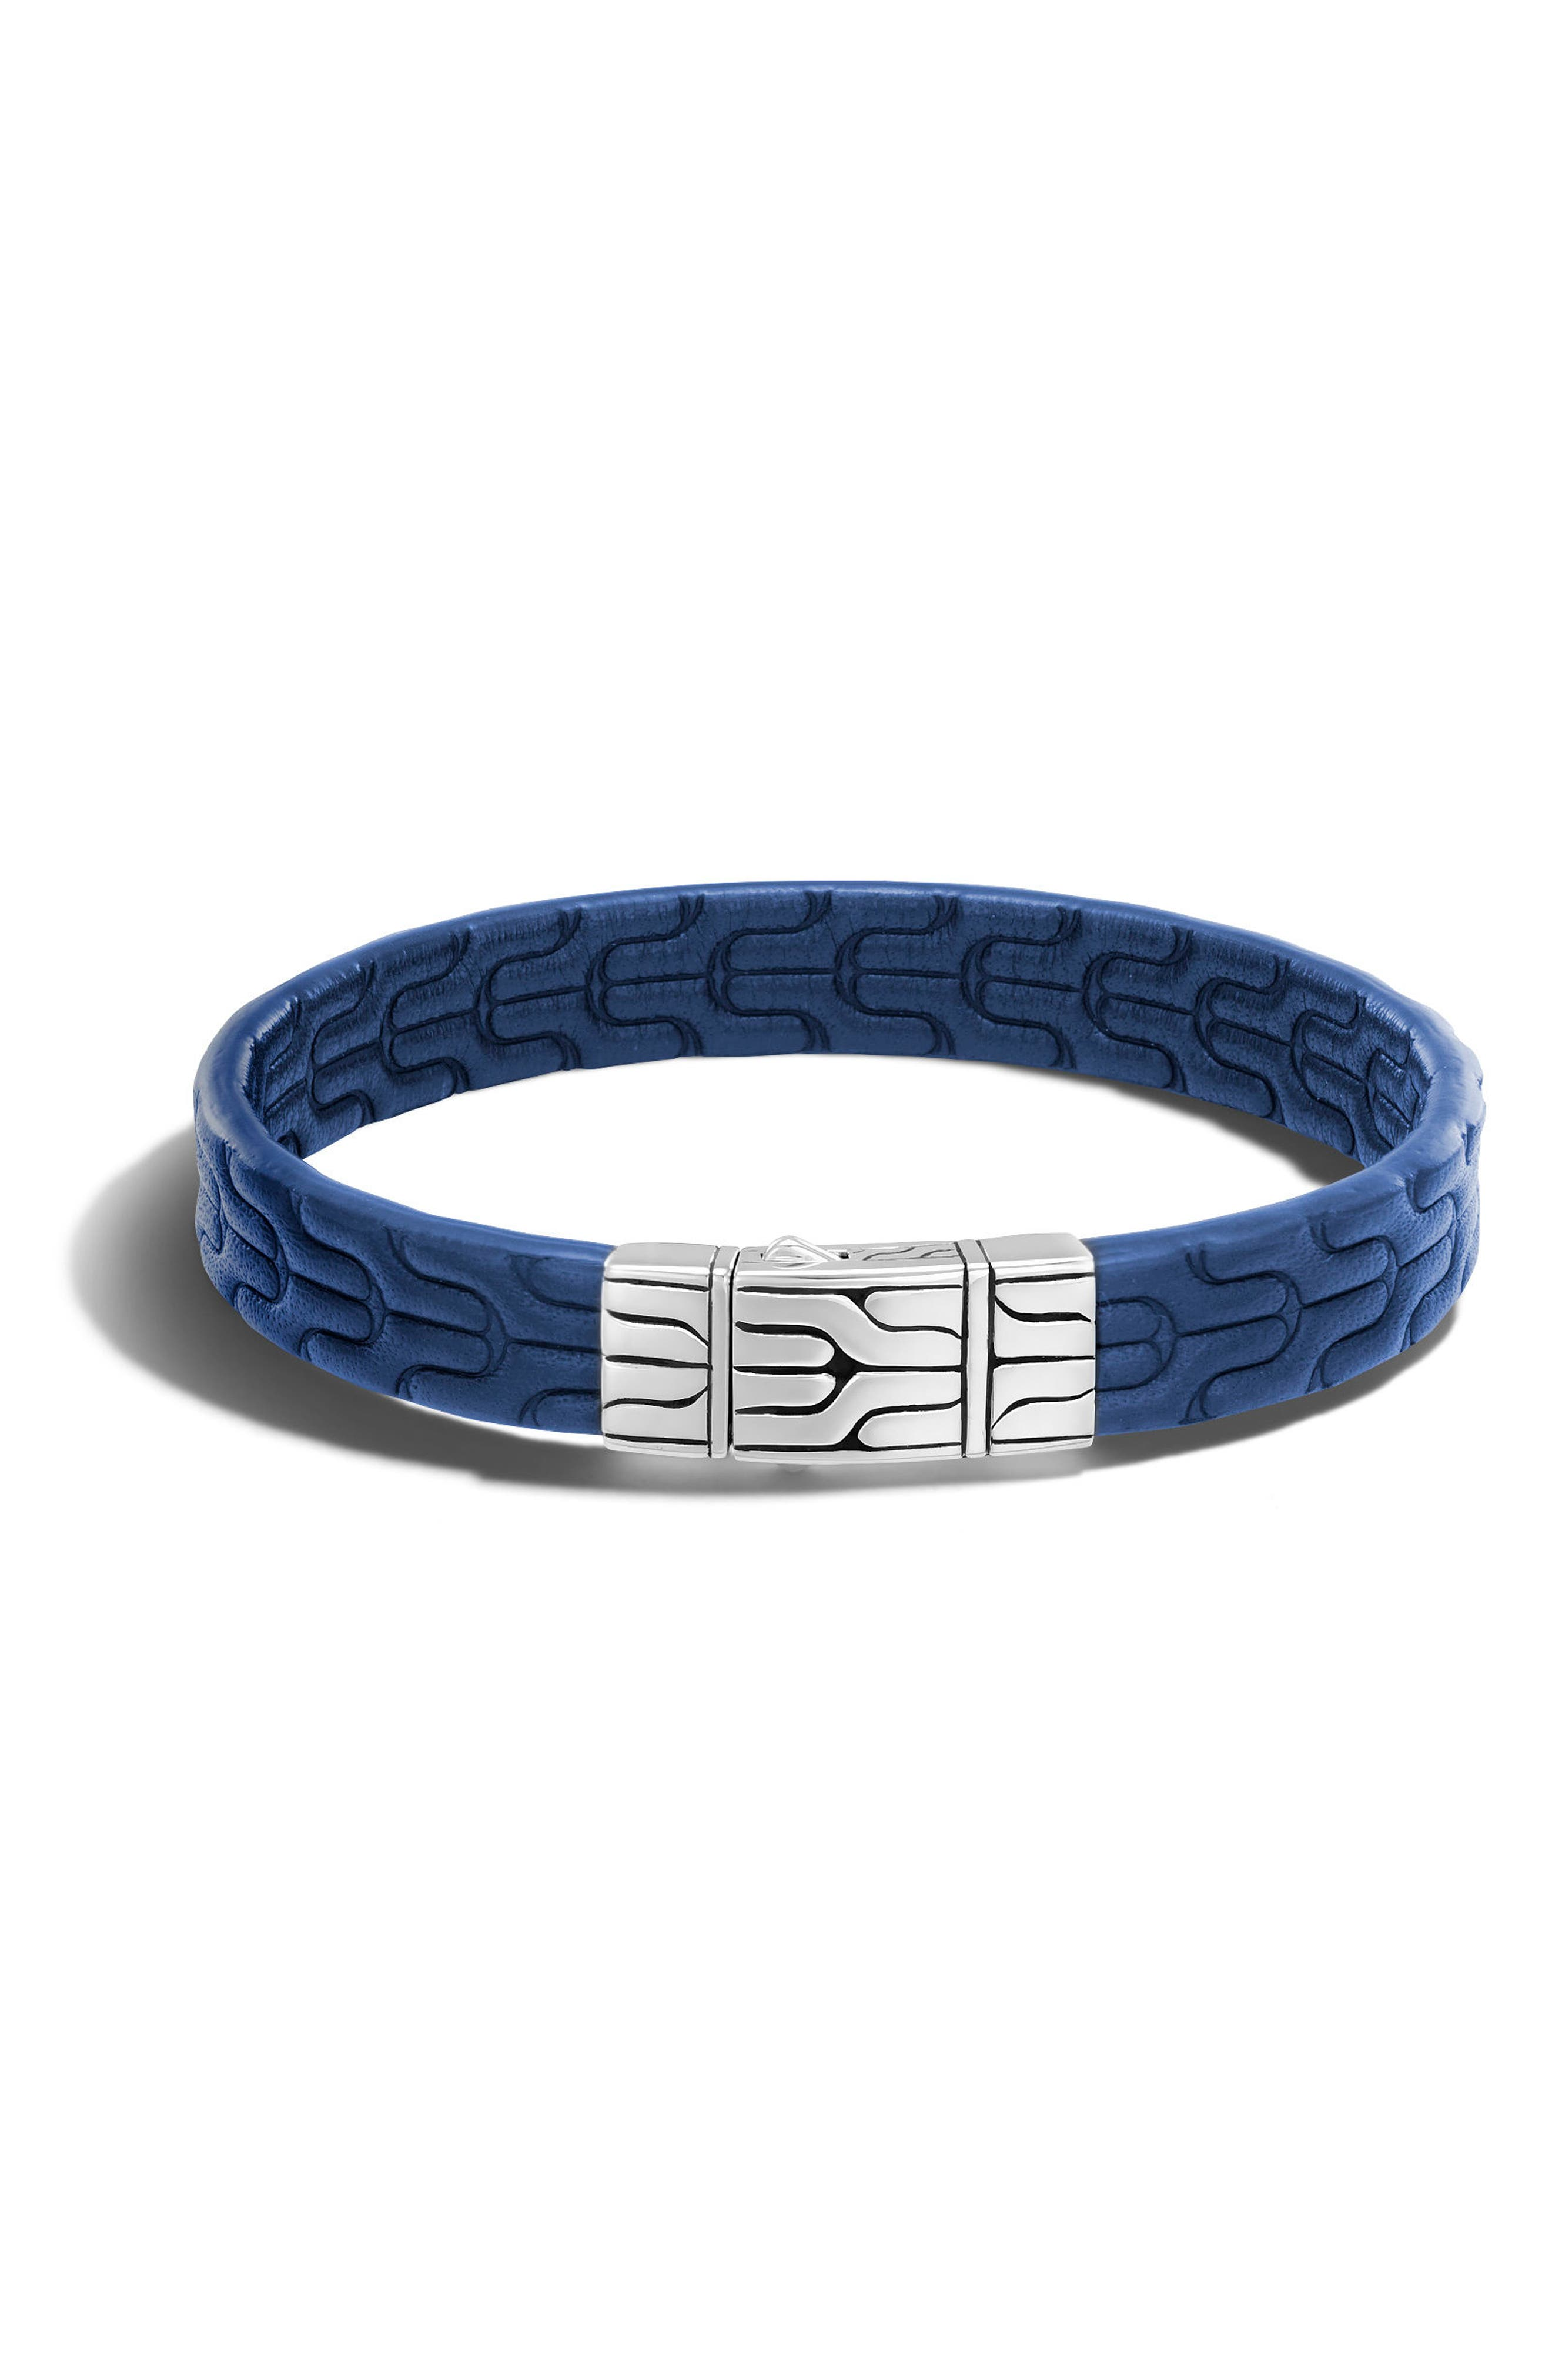 Embossed Leather Bracelet,                             Main thumbnail 1, color,                             SILVER/ BLUE